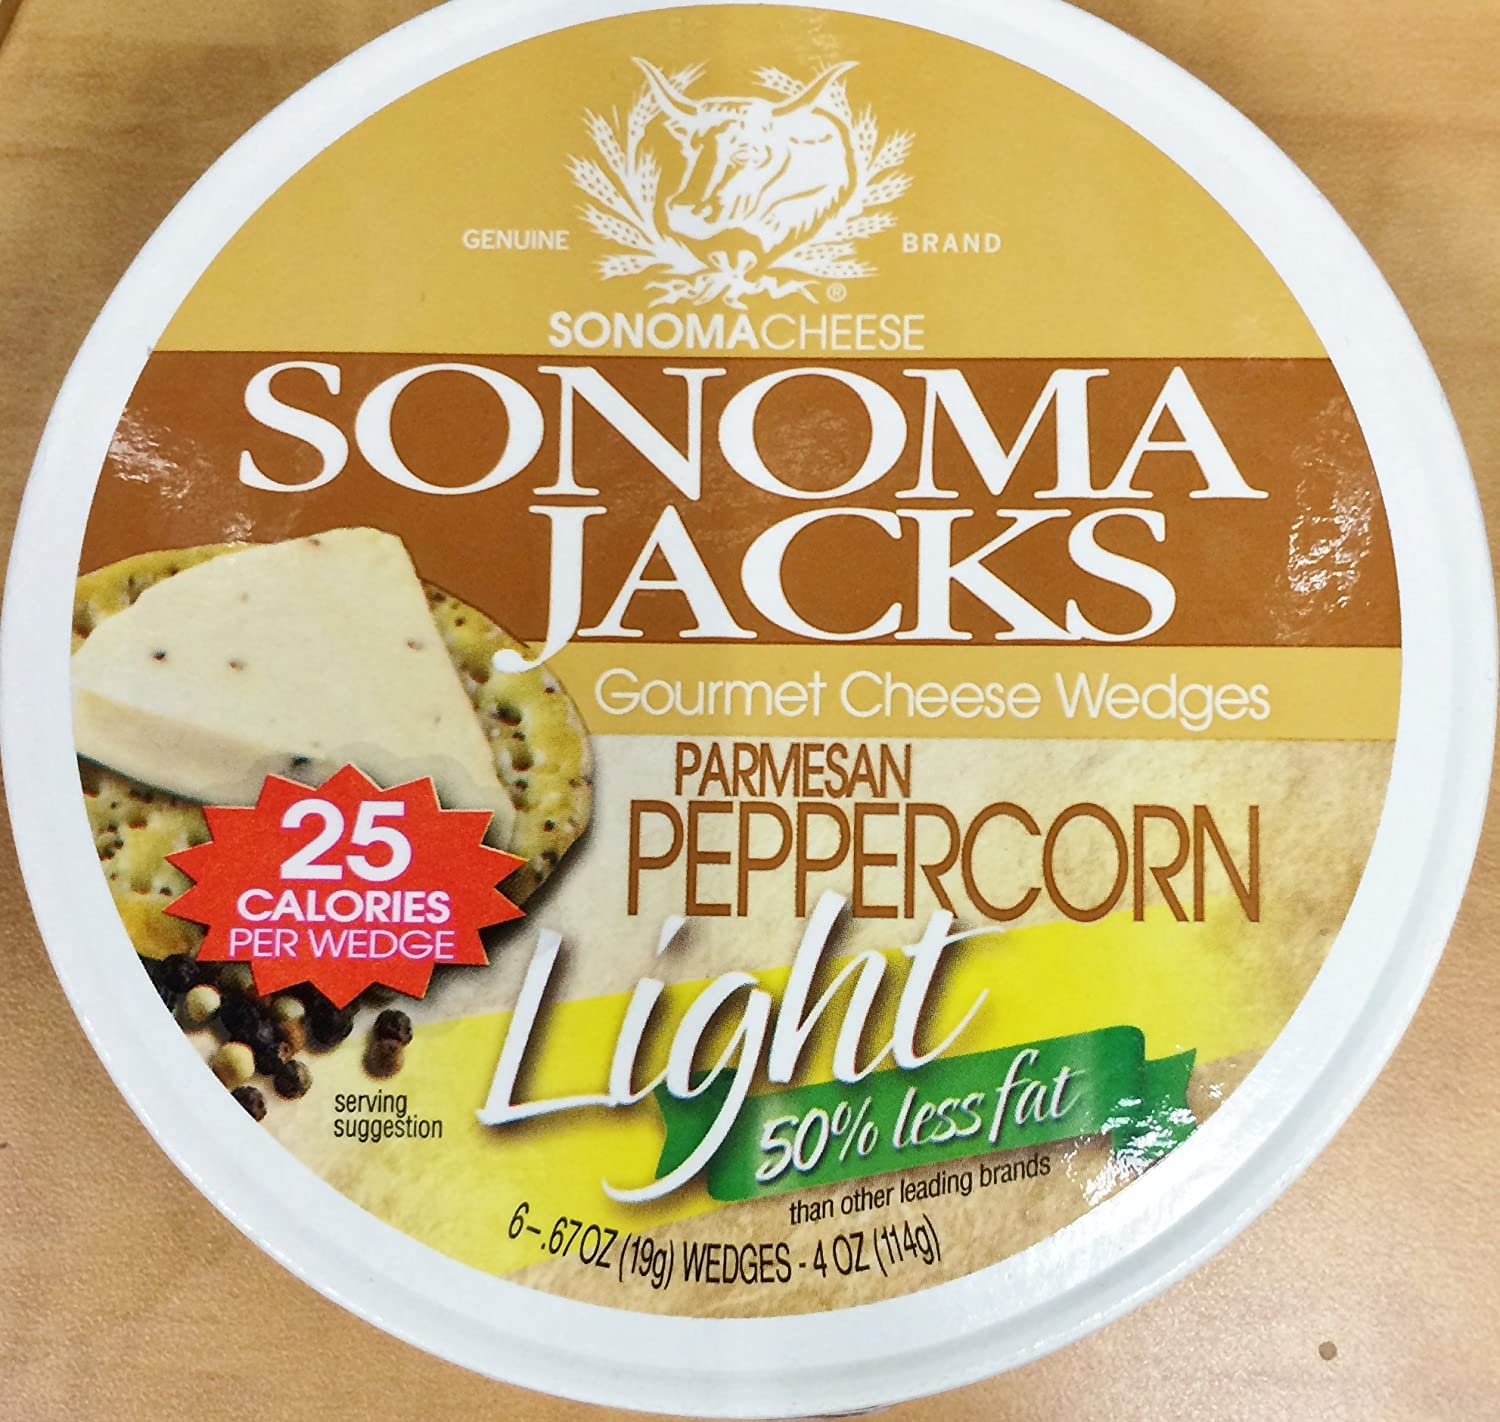 New color 4oz Sonoma Jacks Gourmet Cheese Light Wedges Max 60% OFF Parmesan Peppercorn